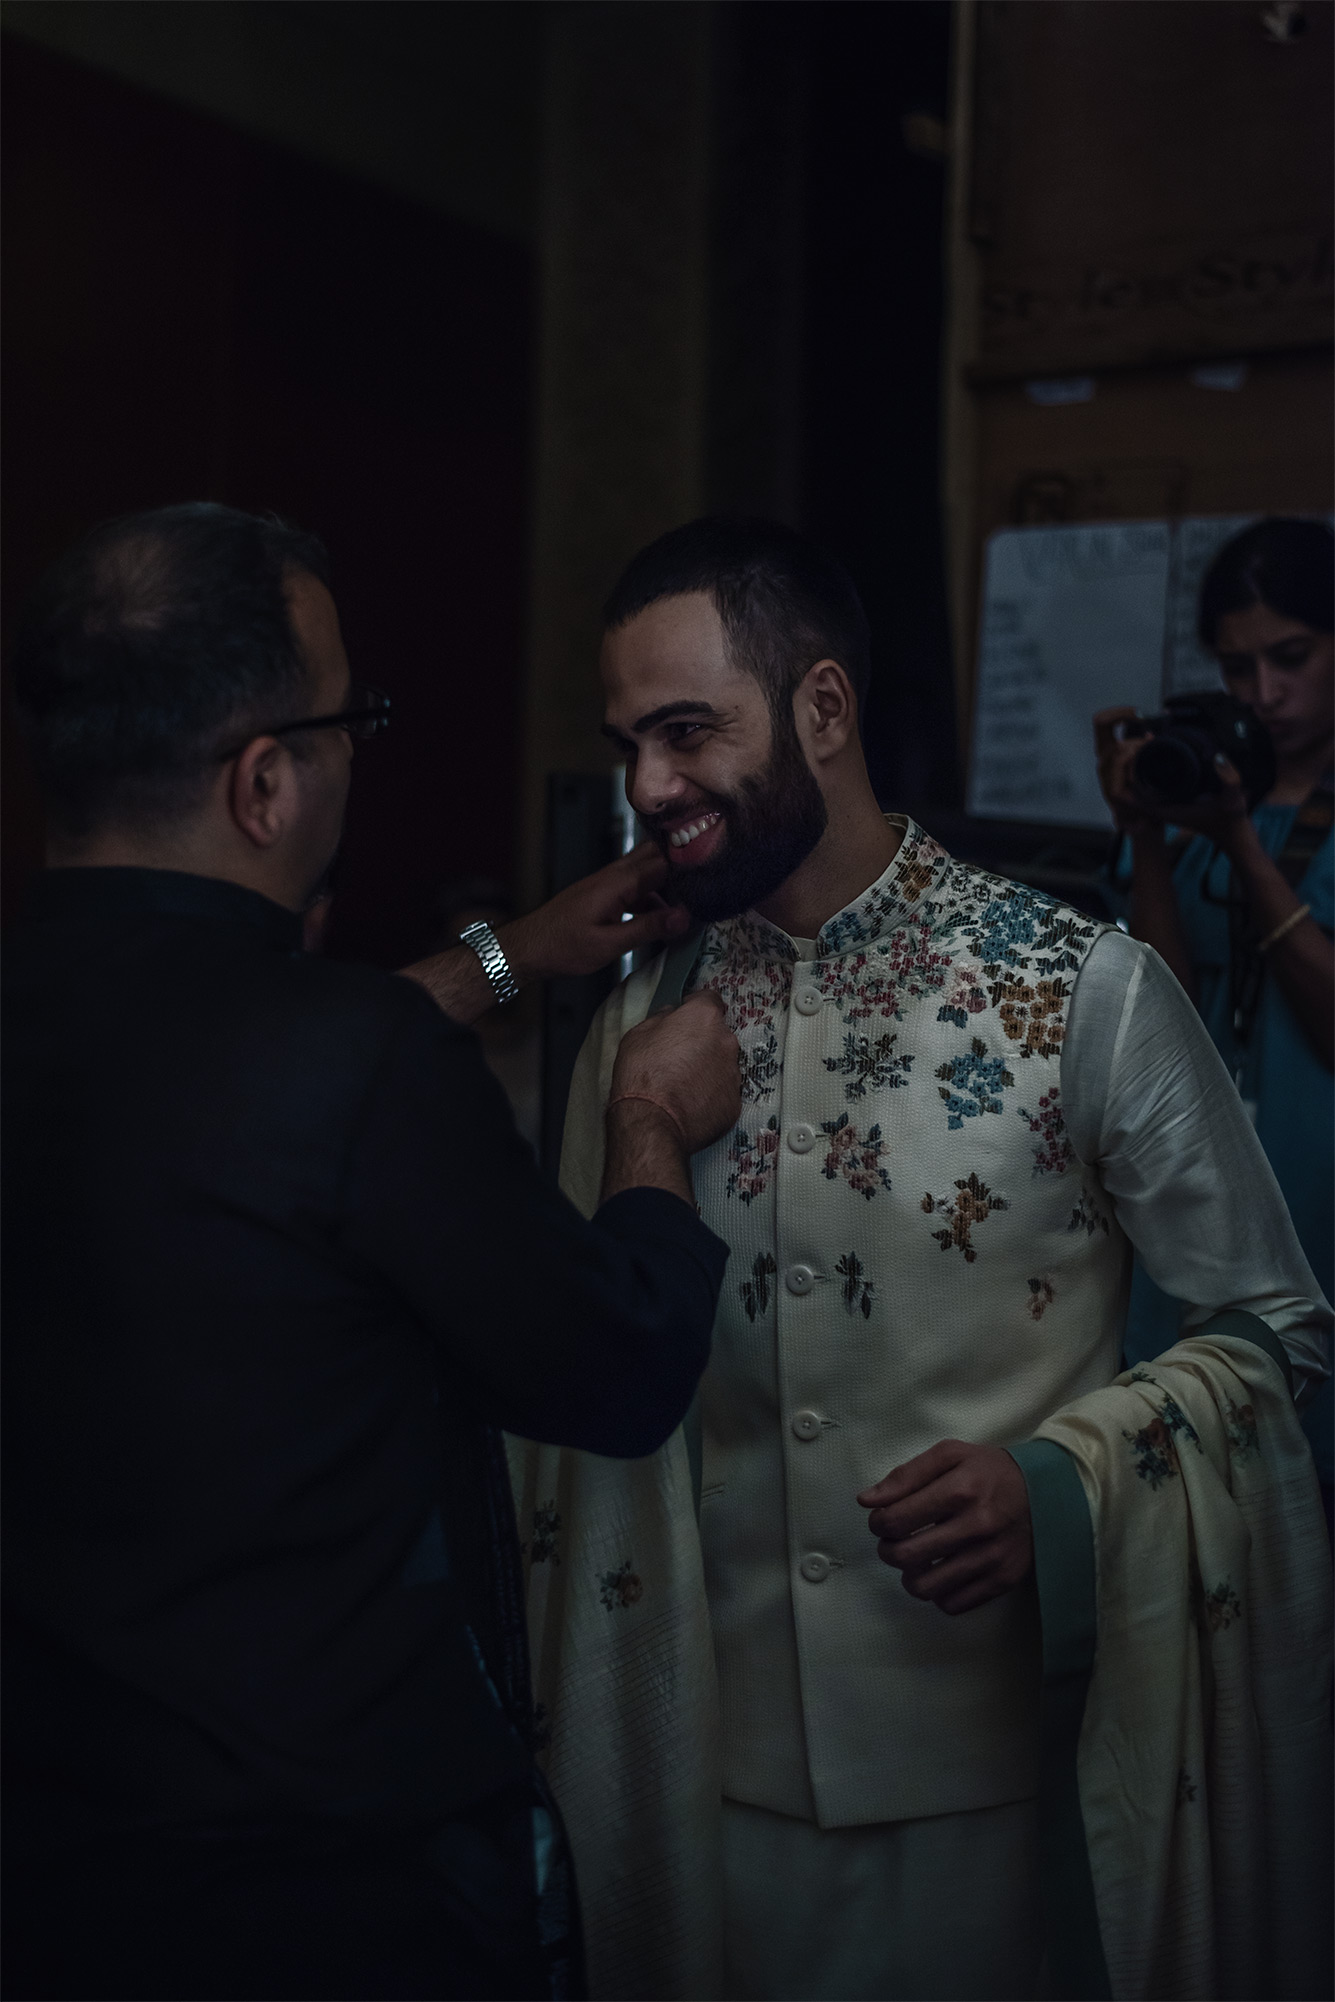 M.A.C. Backstage FDCI India Couture Week 2016 Photo by RAWKY KSH 28